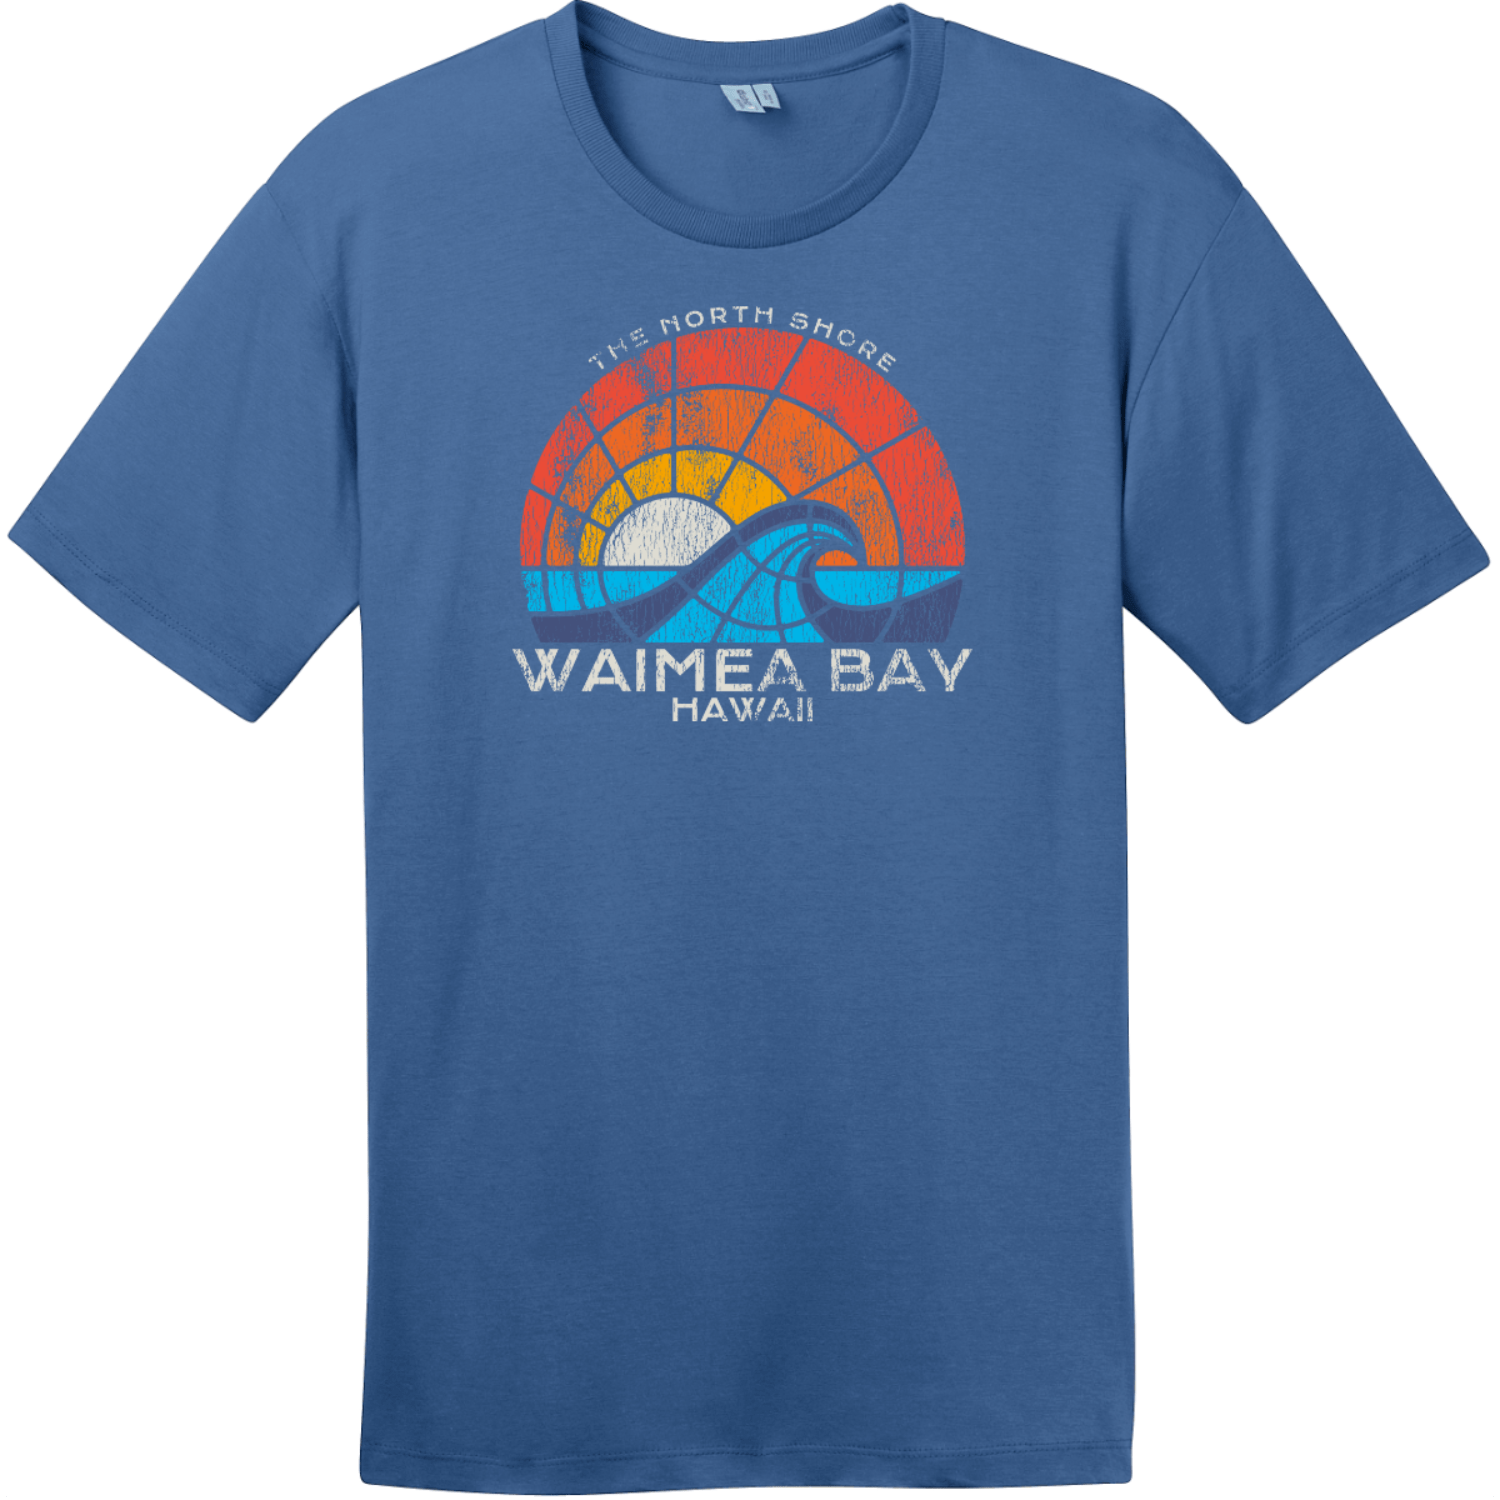 Waimea Bay North Shore Hawaii T-Shirt Maritime Blue District Perfect Weight Tee DT104